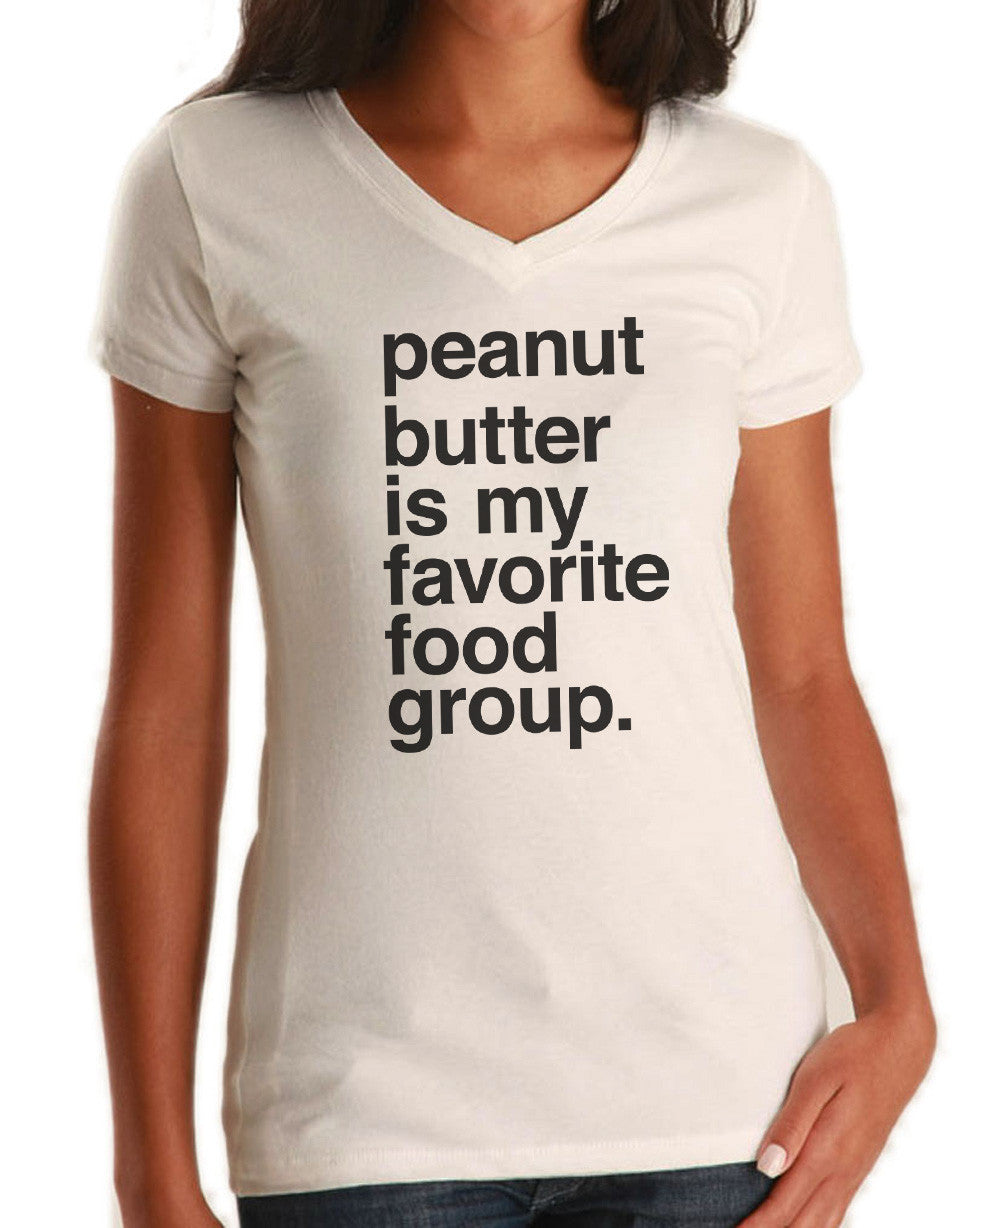 Women's Peanut Butter is My Favorite Food Group Vneck T-Shirt